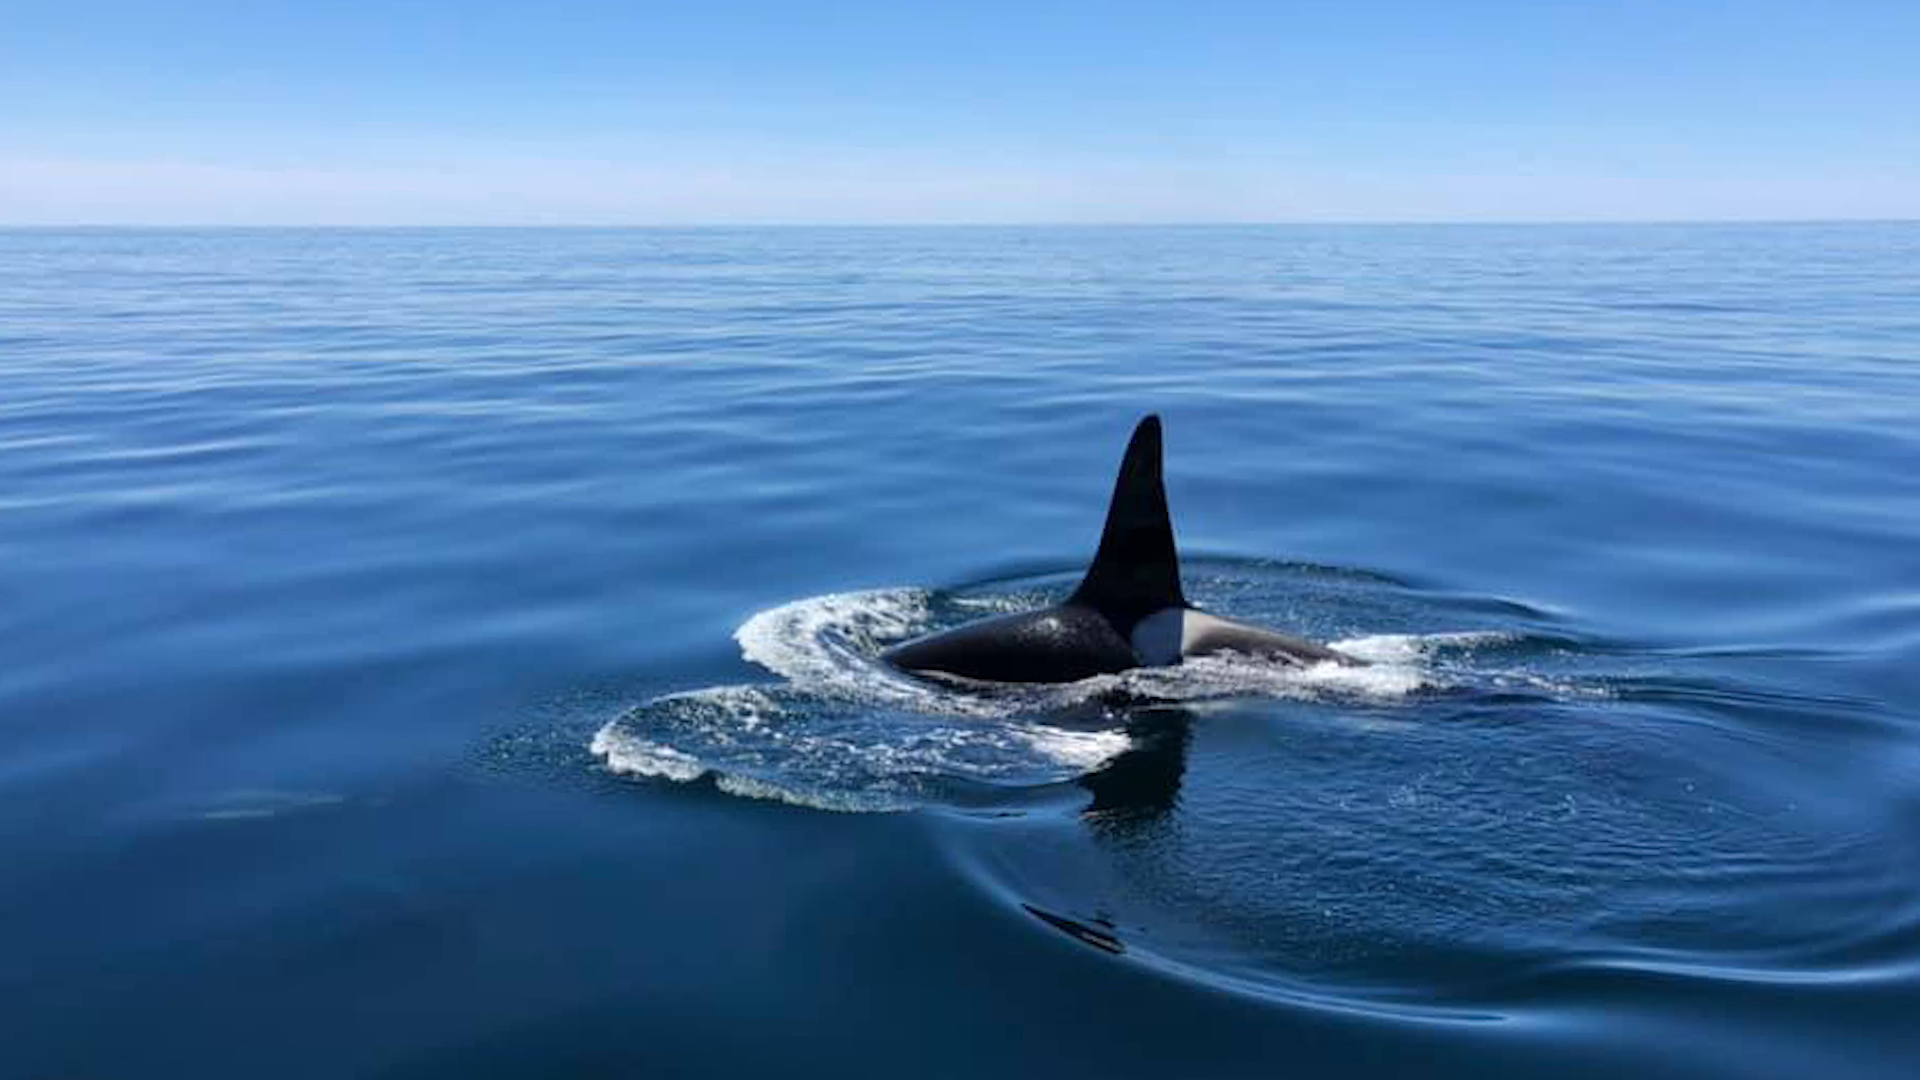 d0d0c61e011 Rare killer whale spotted swimming with dolphins - CNN Video